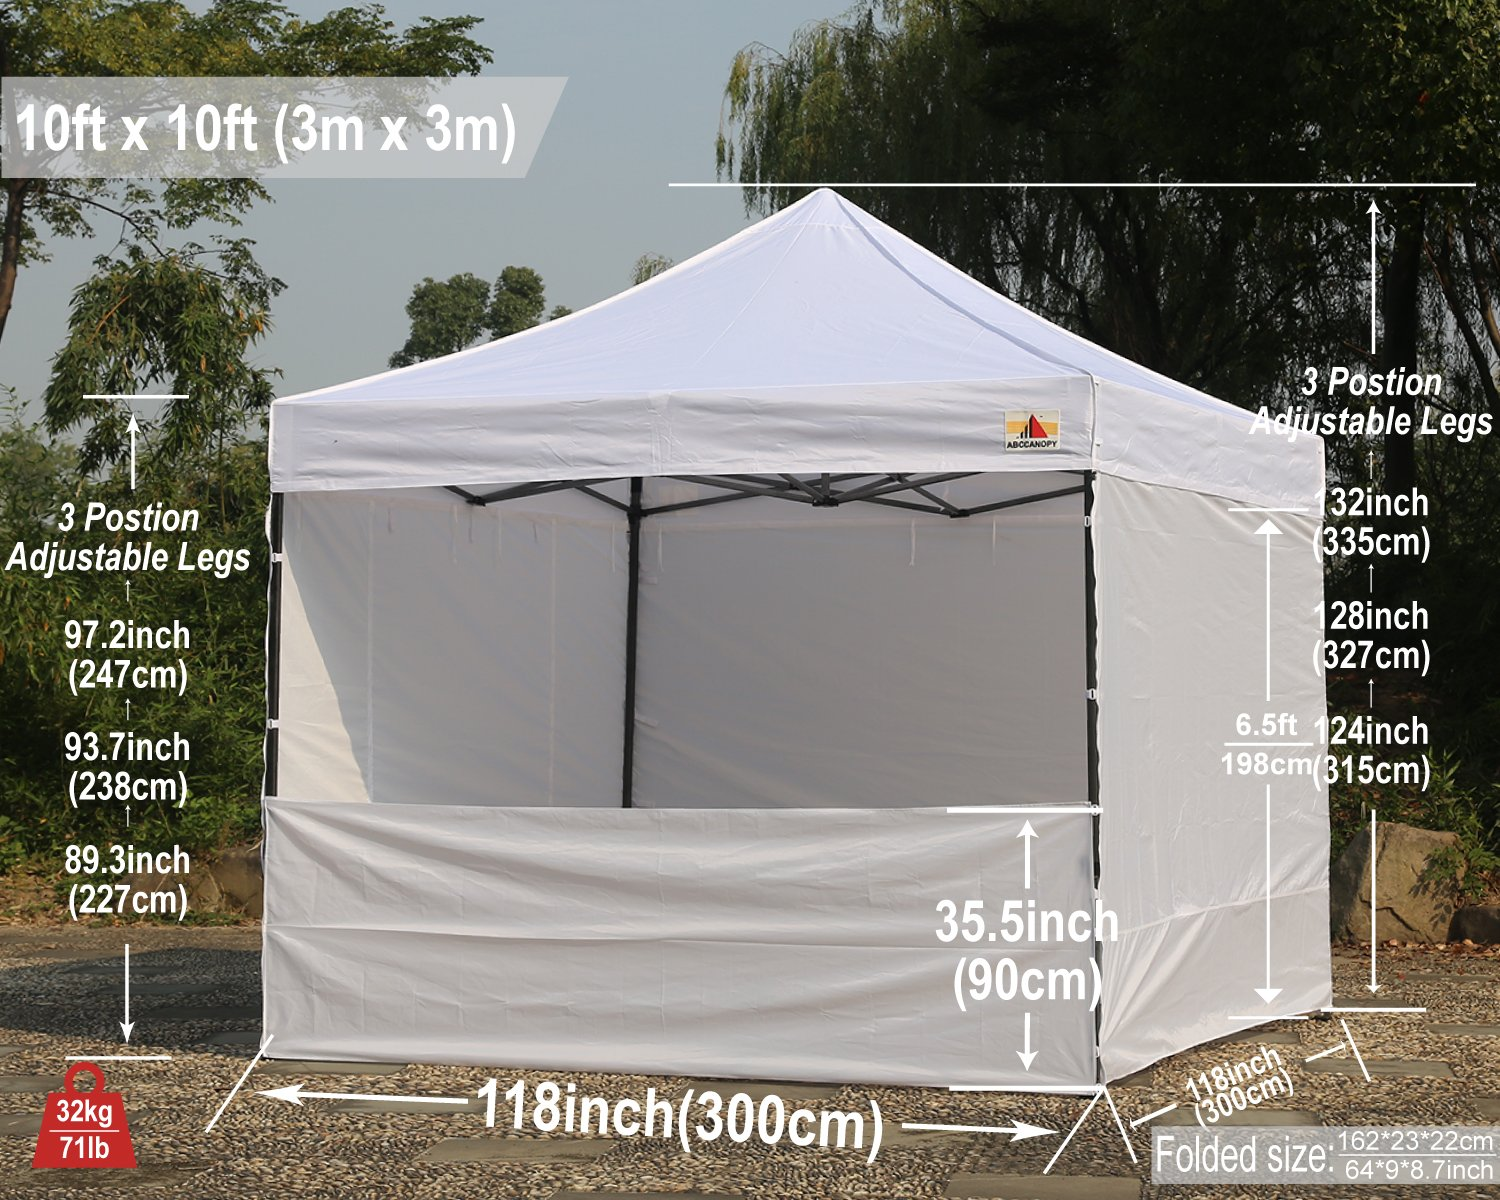 Abccanopy Deluxe 10x10 Instant Canopy Craft Display Tent Portable Booth Market Stall with Wheeled Carry Bag , Bonus 4x Weight Bag by ABCCANOPY (Image #7)